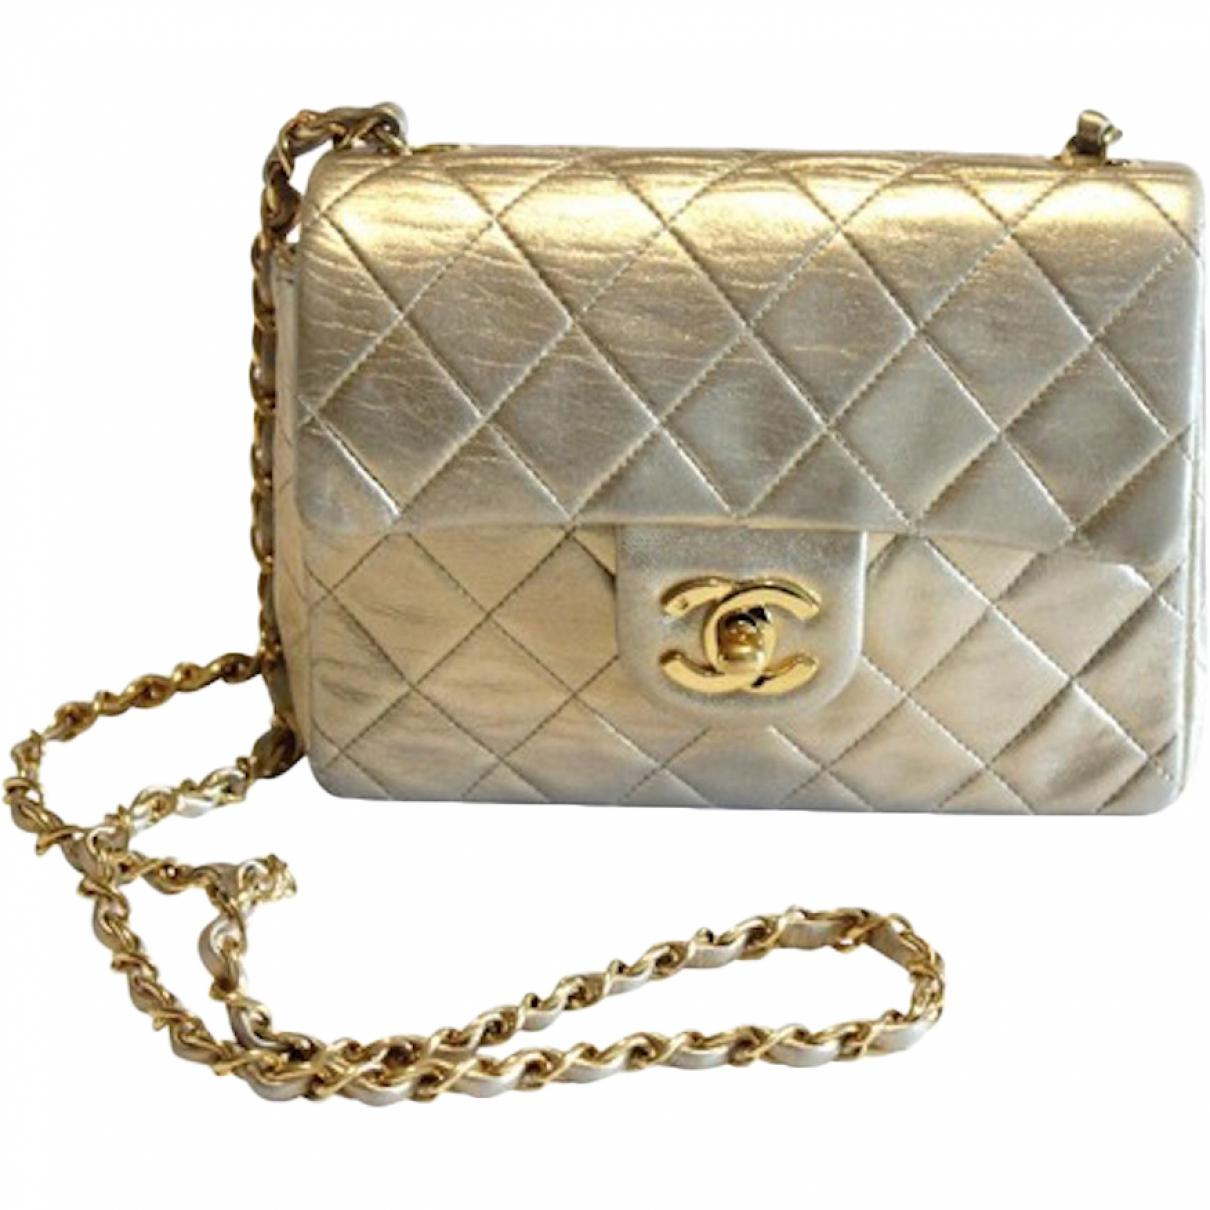 71fcb5b04 Lyst - Chanel Pre-owned Vintage Timeless/classique Gold Leather ...